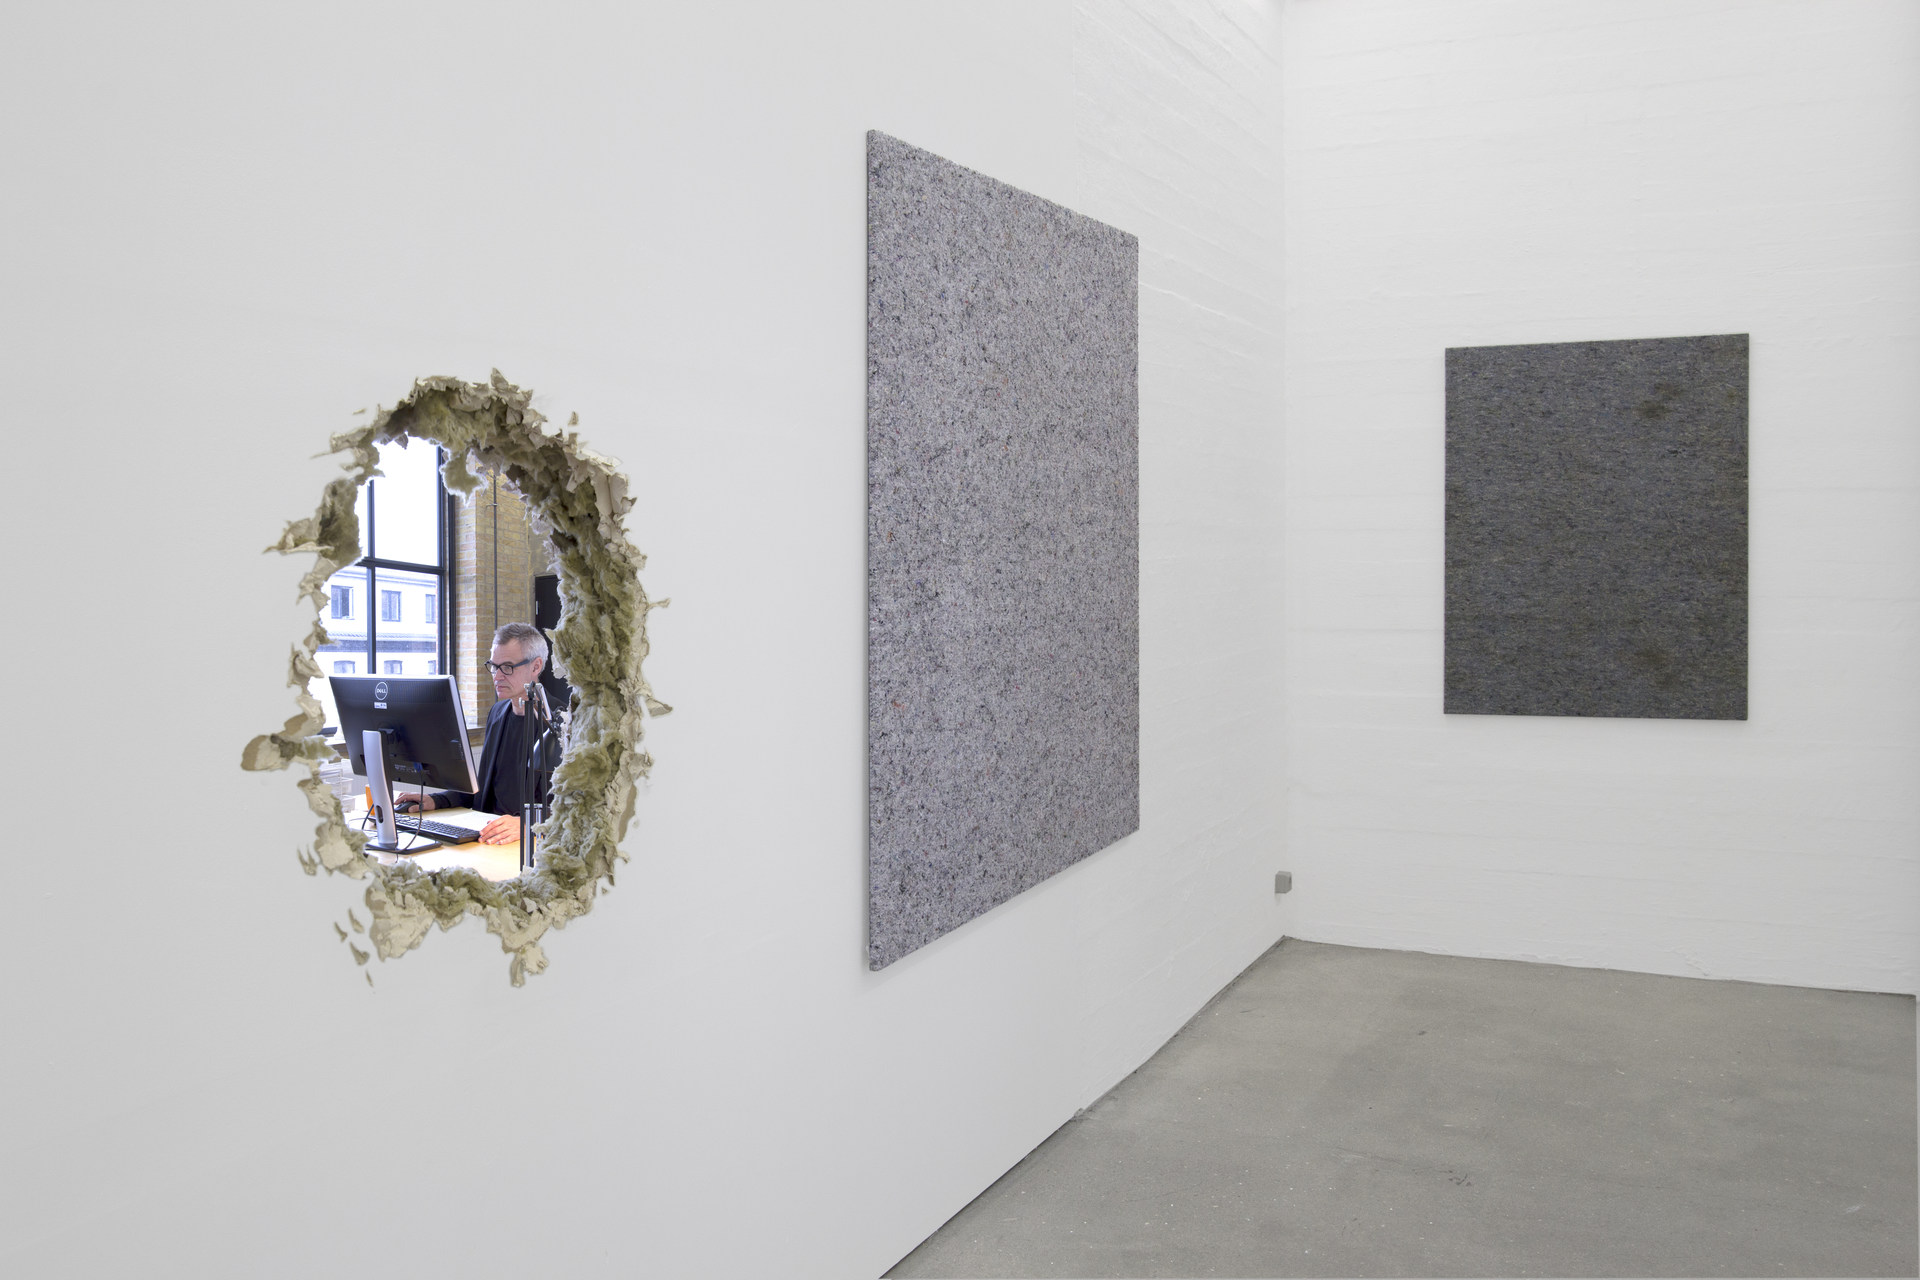 069_Installation view